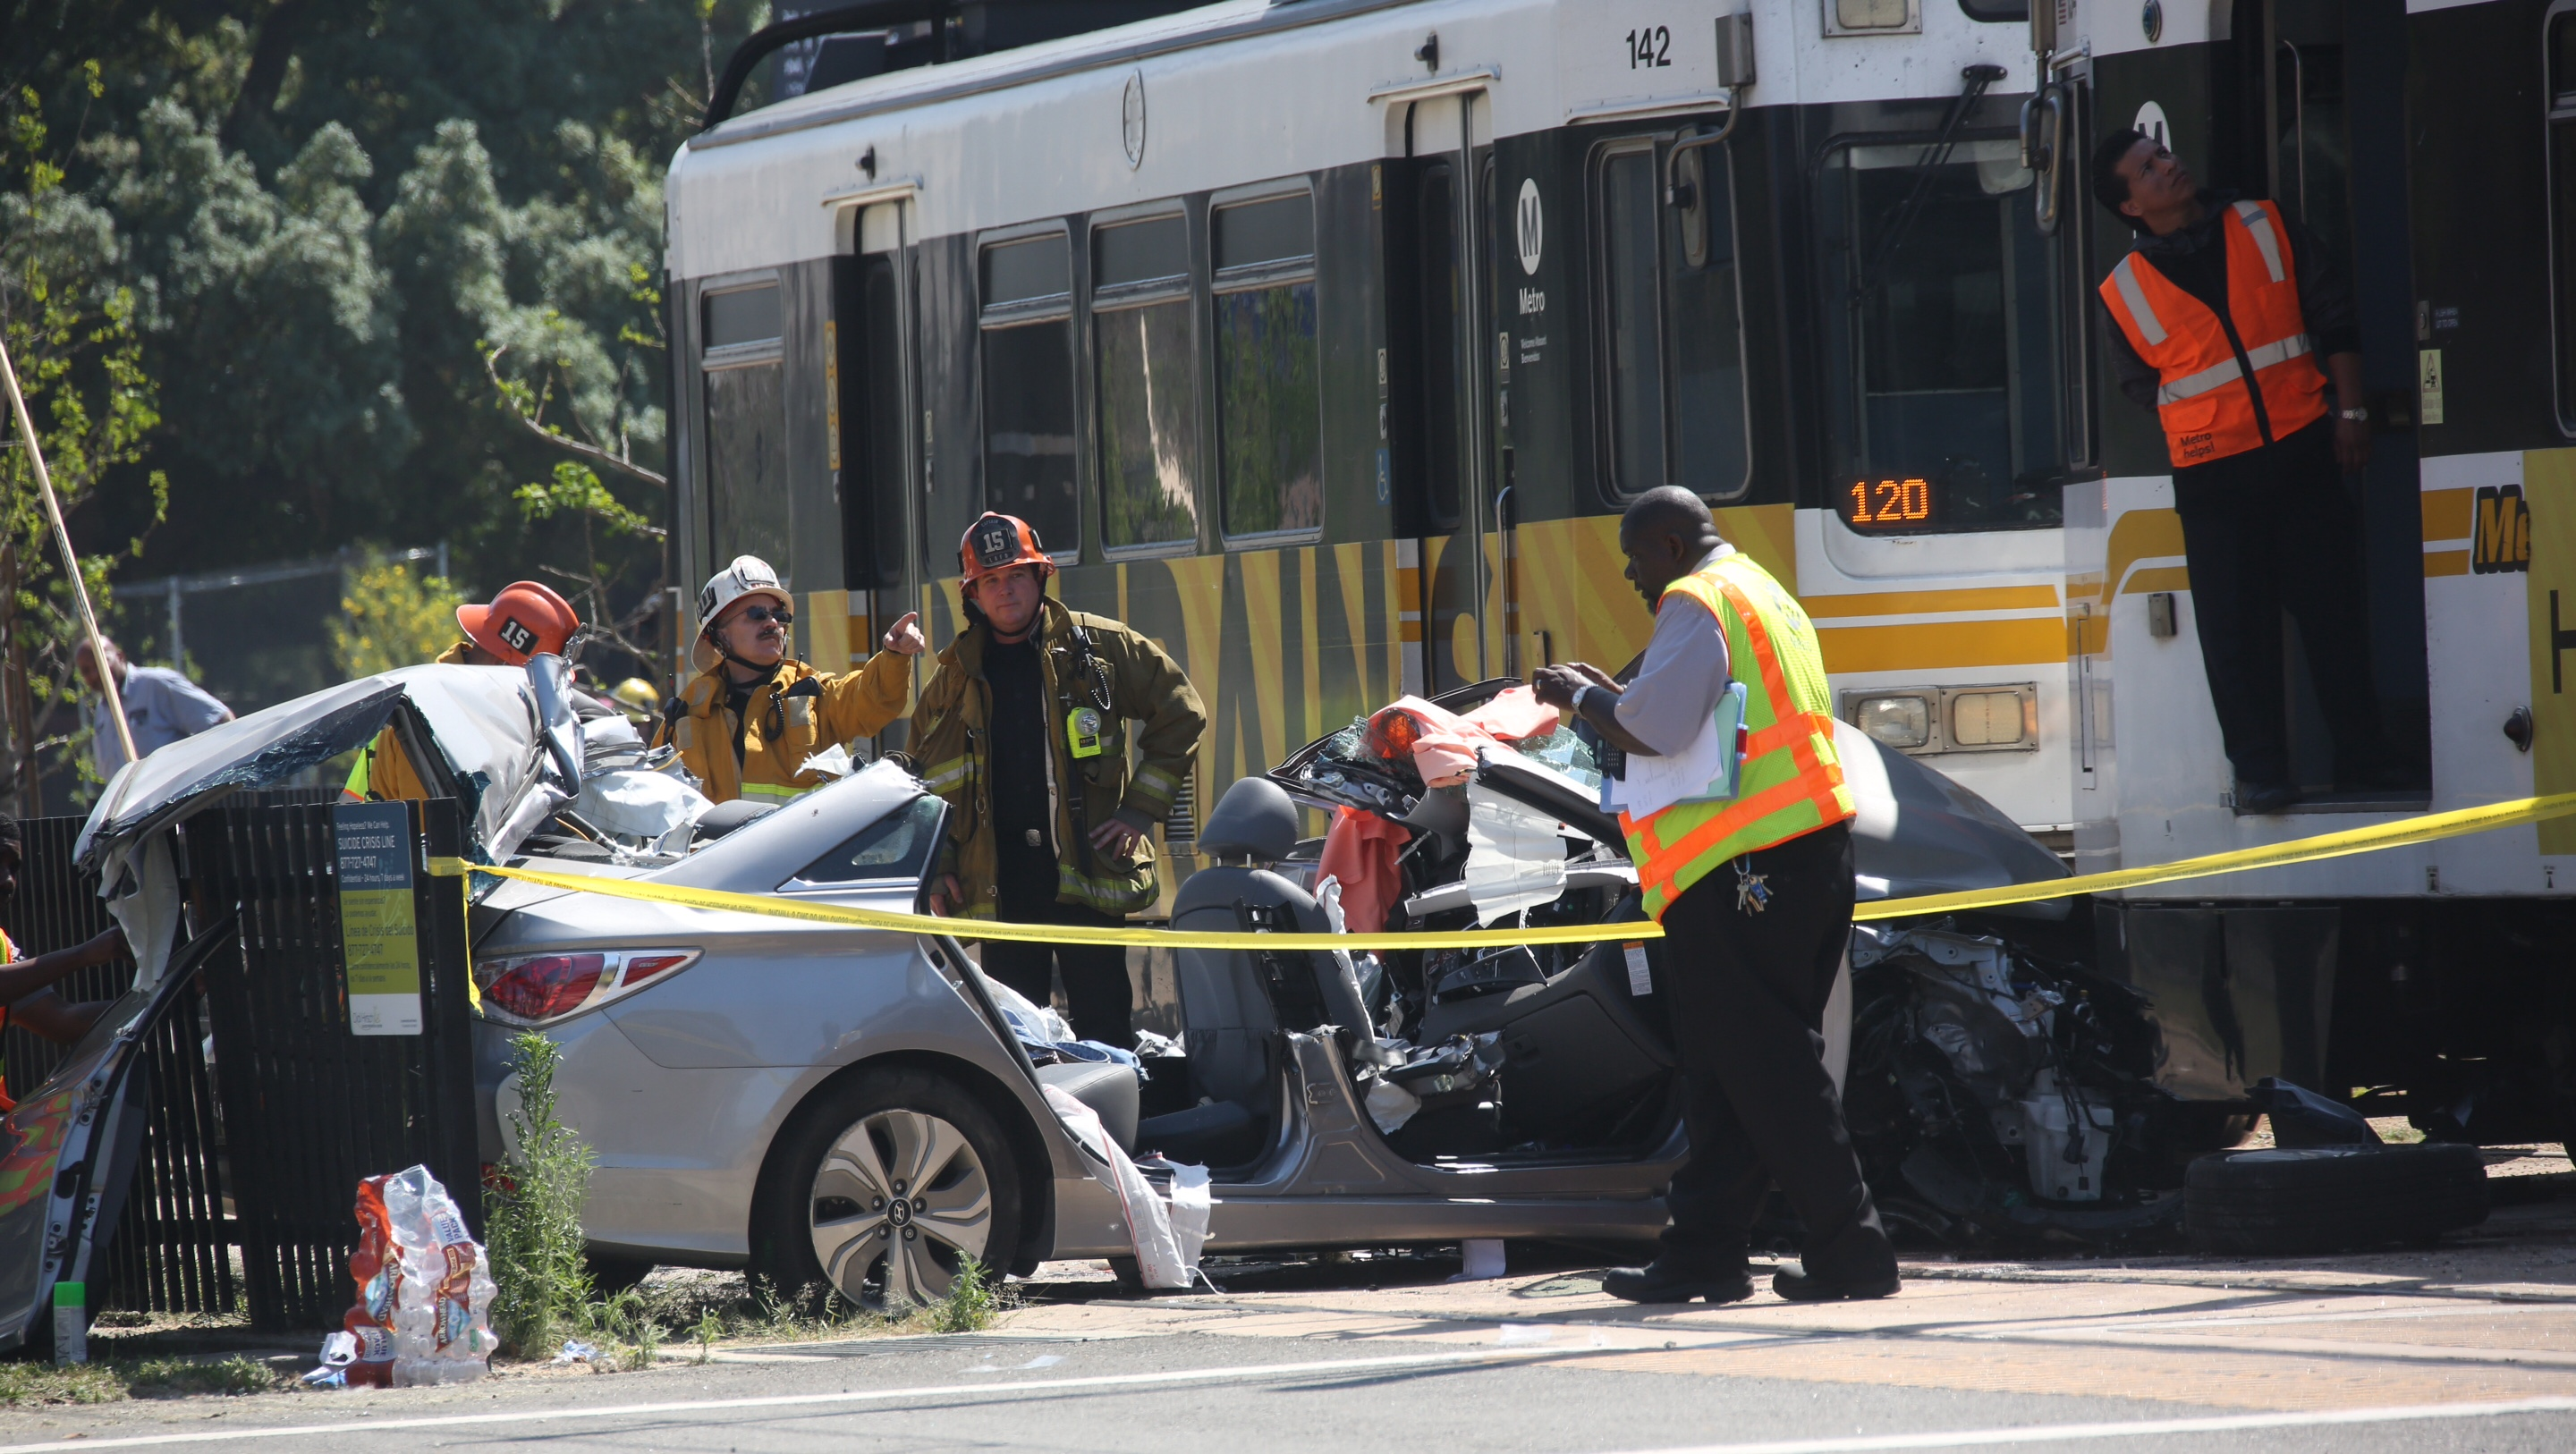 Los Angeles Car Accident: Train Hits Car On Tracks And Derails, 21 Hurt